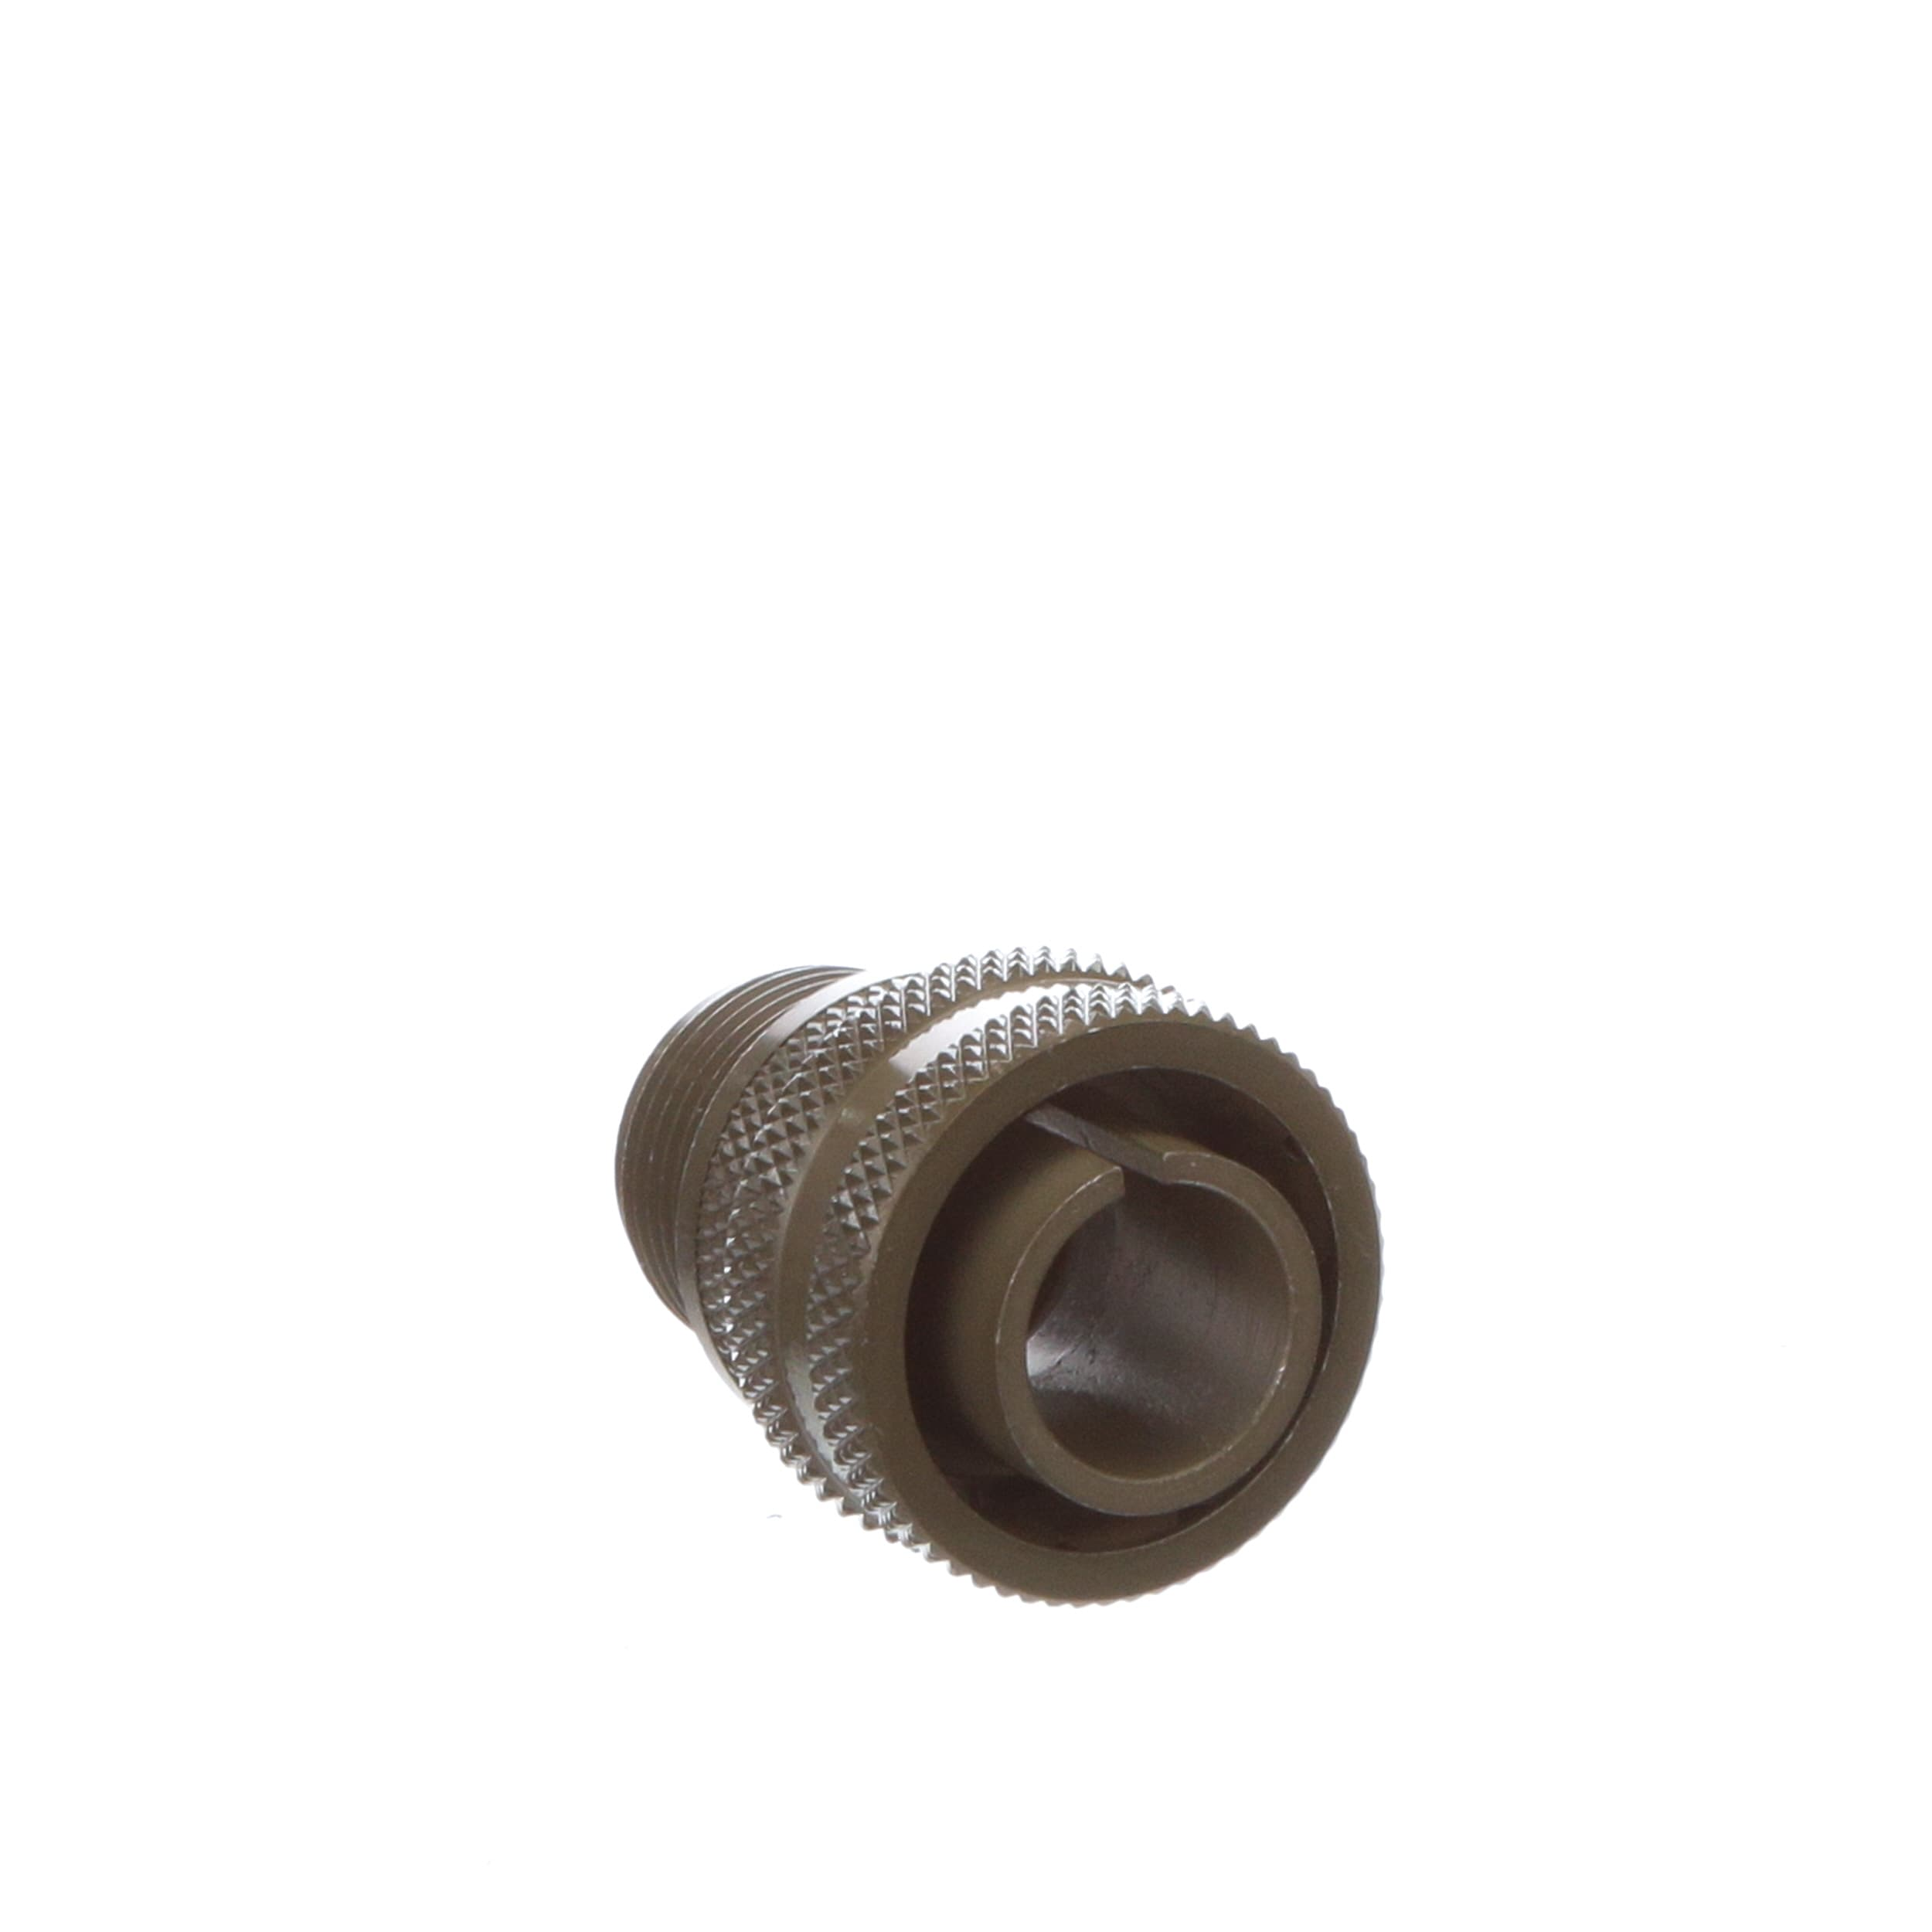 Amphenol Part Number 97-3107A-16-7S